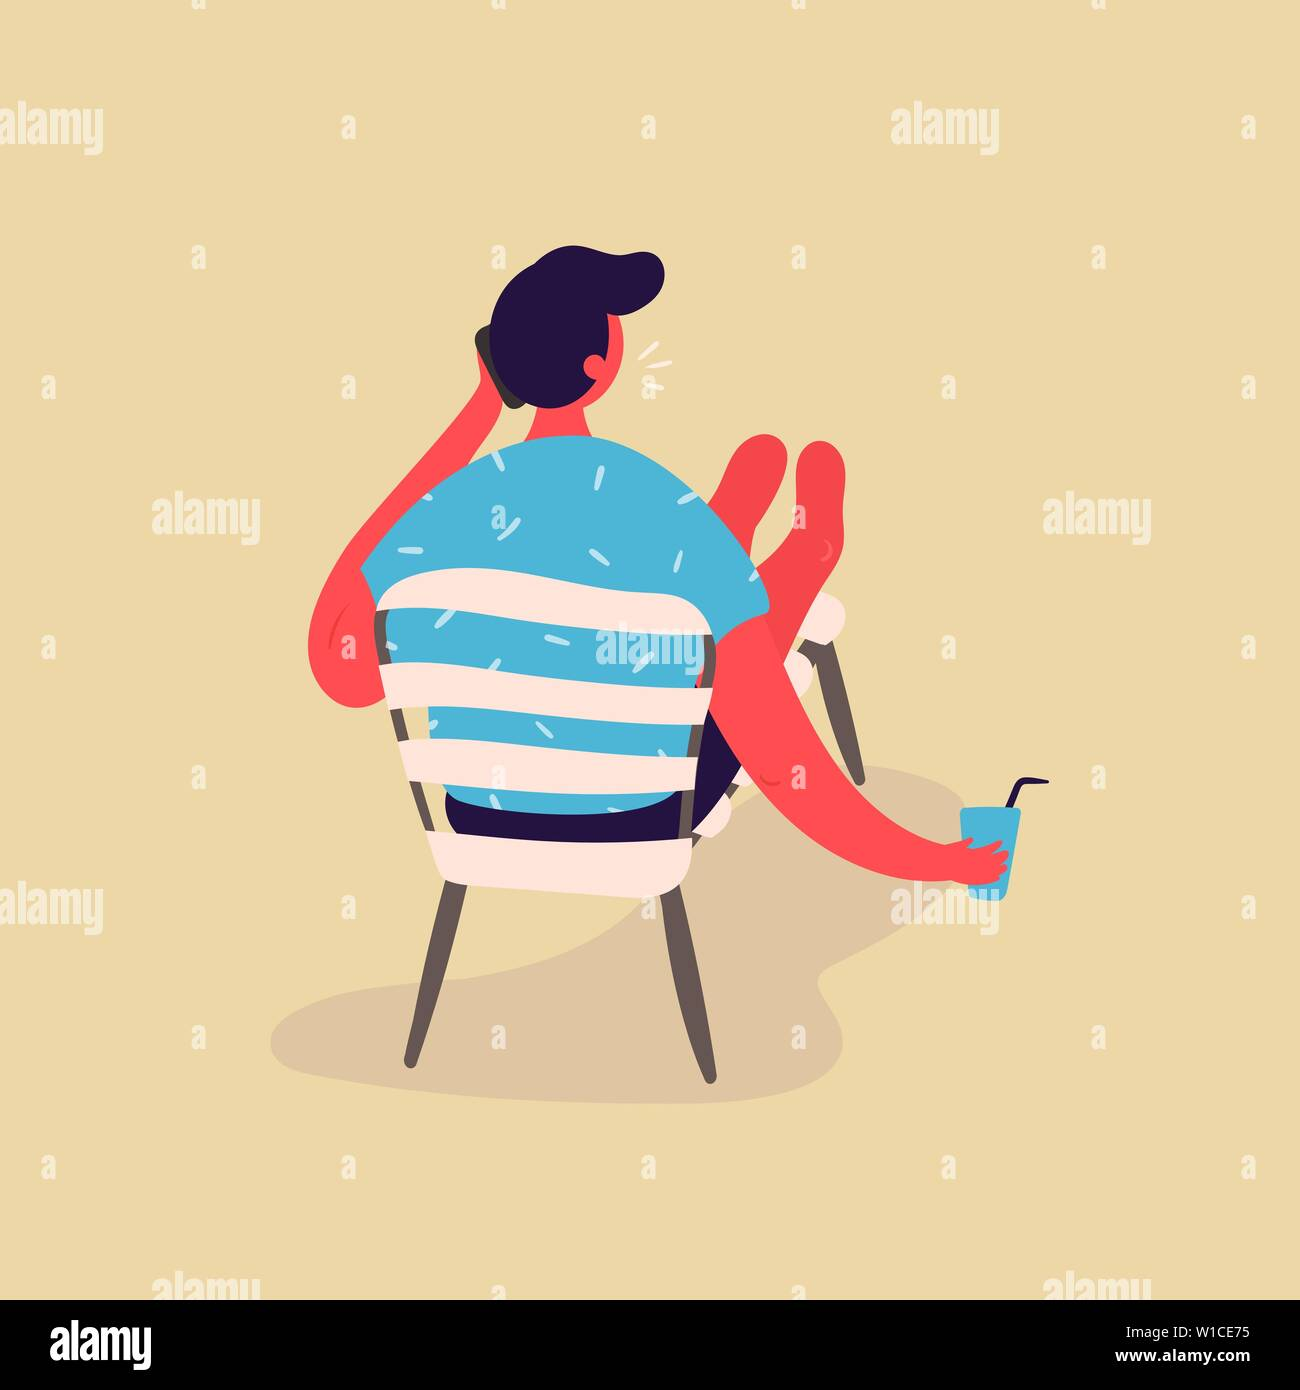 The young man resting while sitting on a chaise lounge, drinking water and talking on the phone. The young man vacationing in beach clothes. The man i Stock Vector